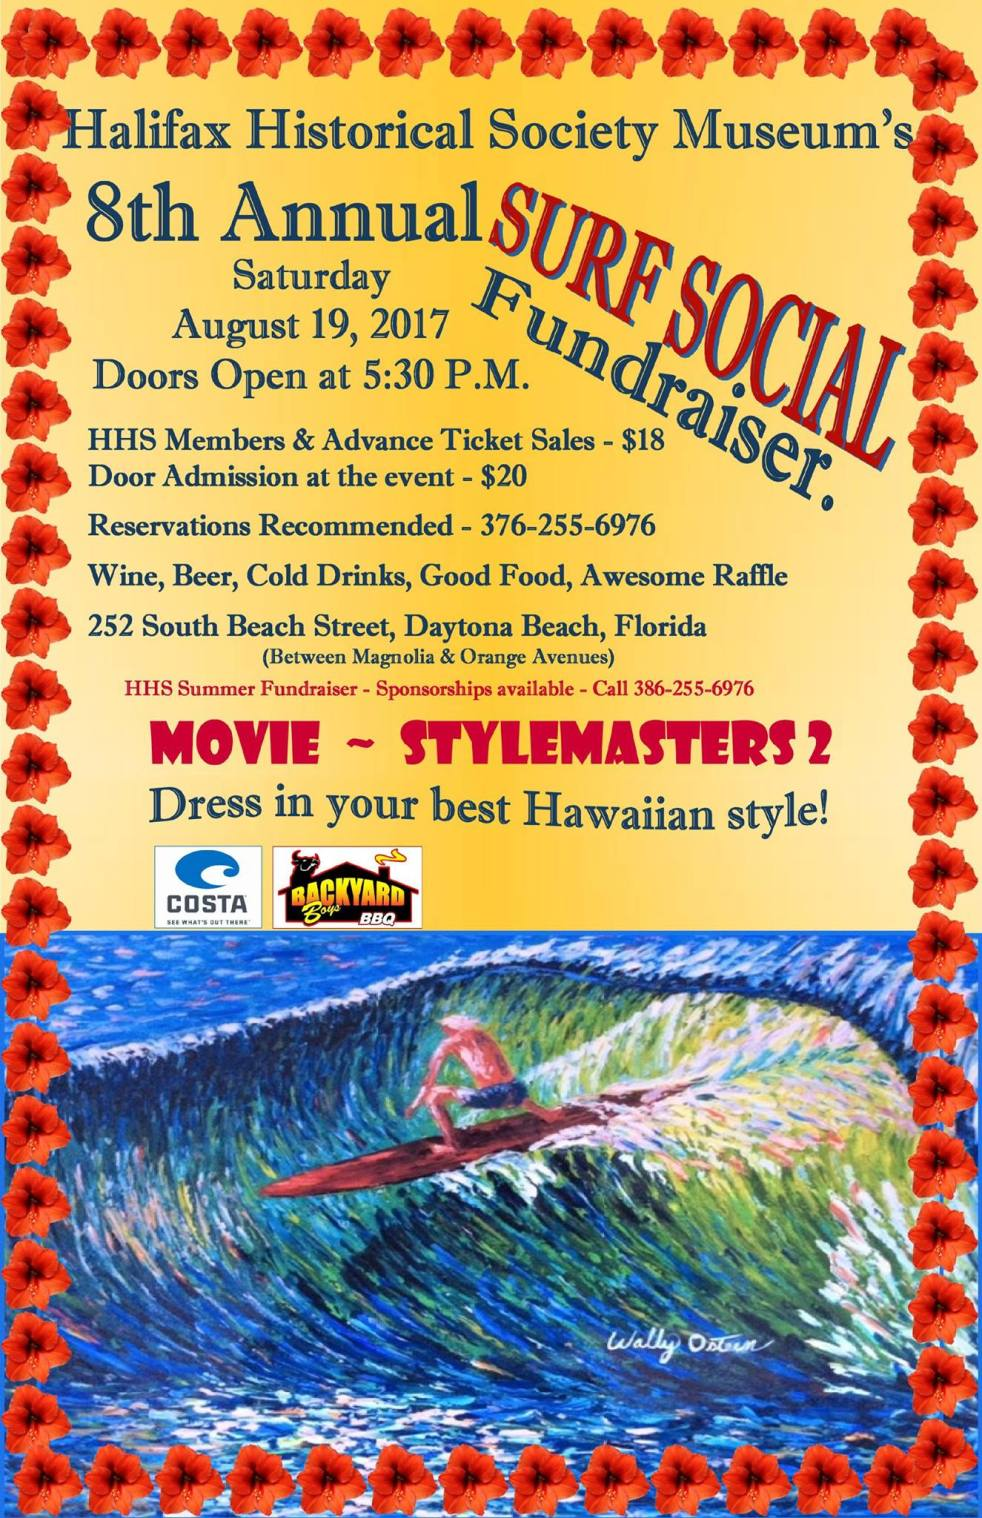 Surf's Up! Halifax Historical Society 8th annual Fundraiser